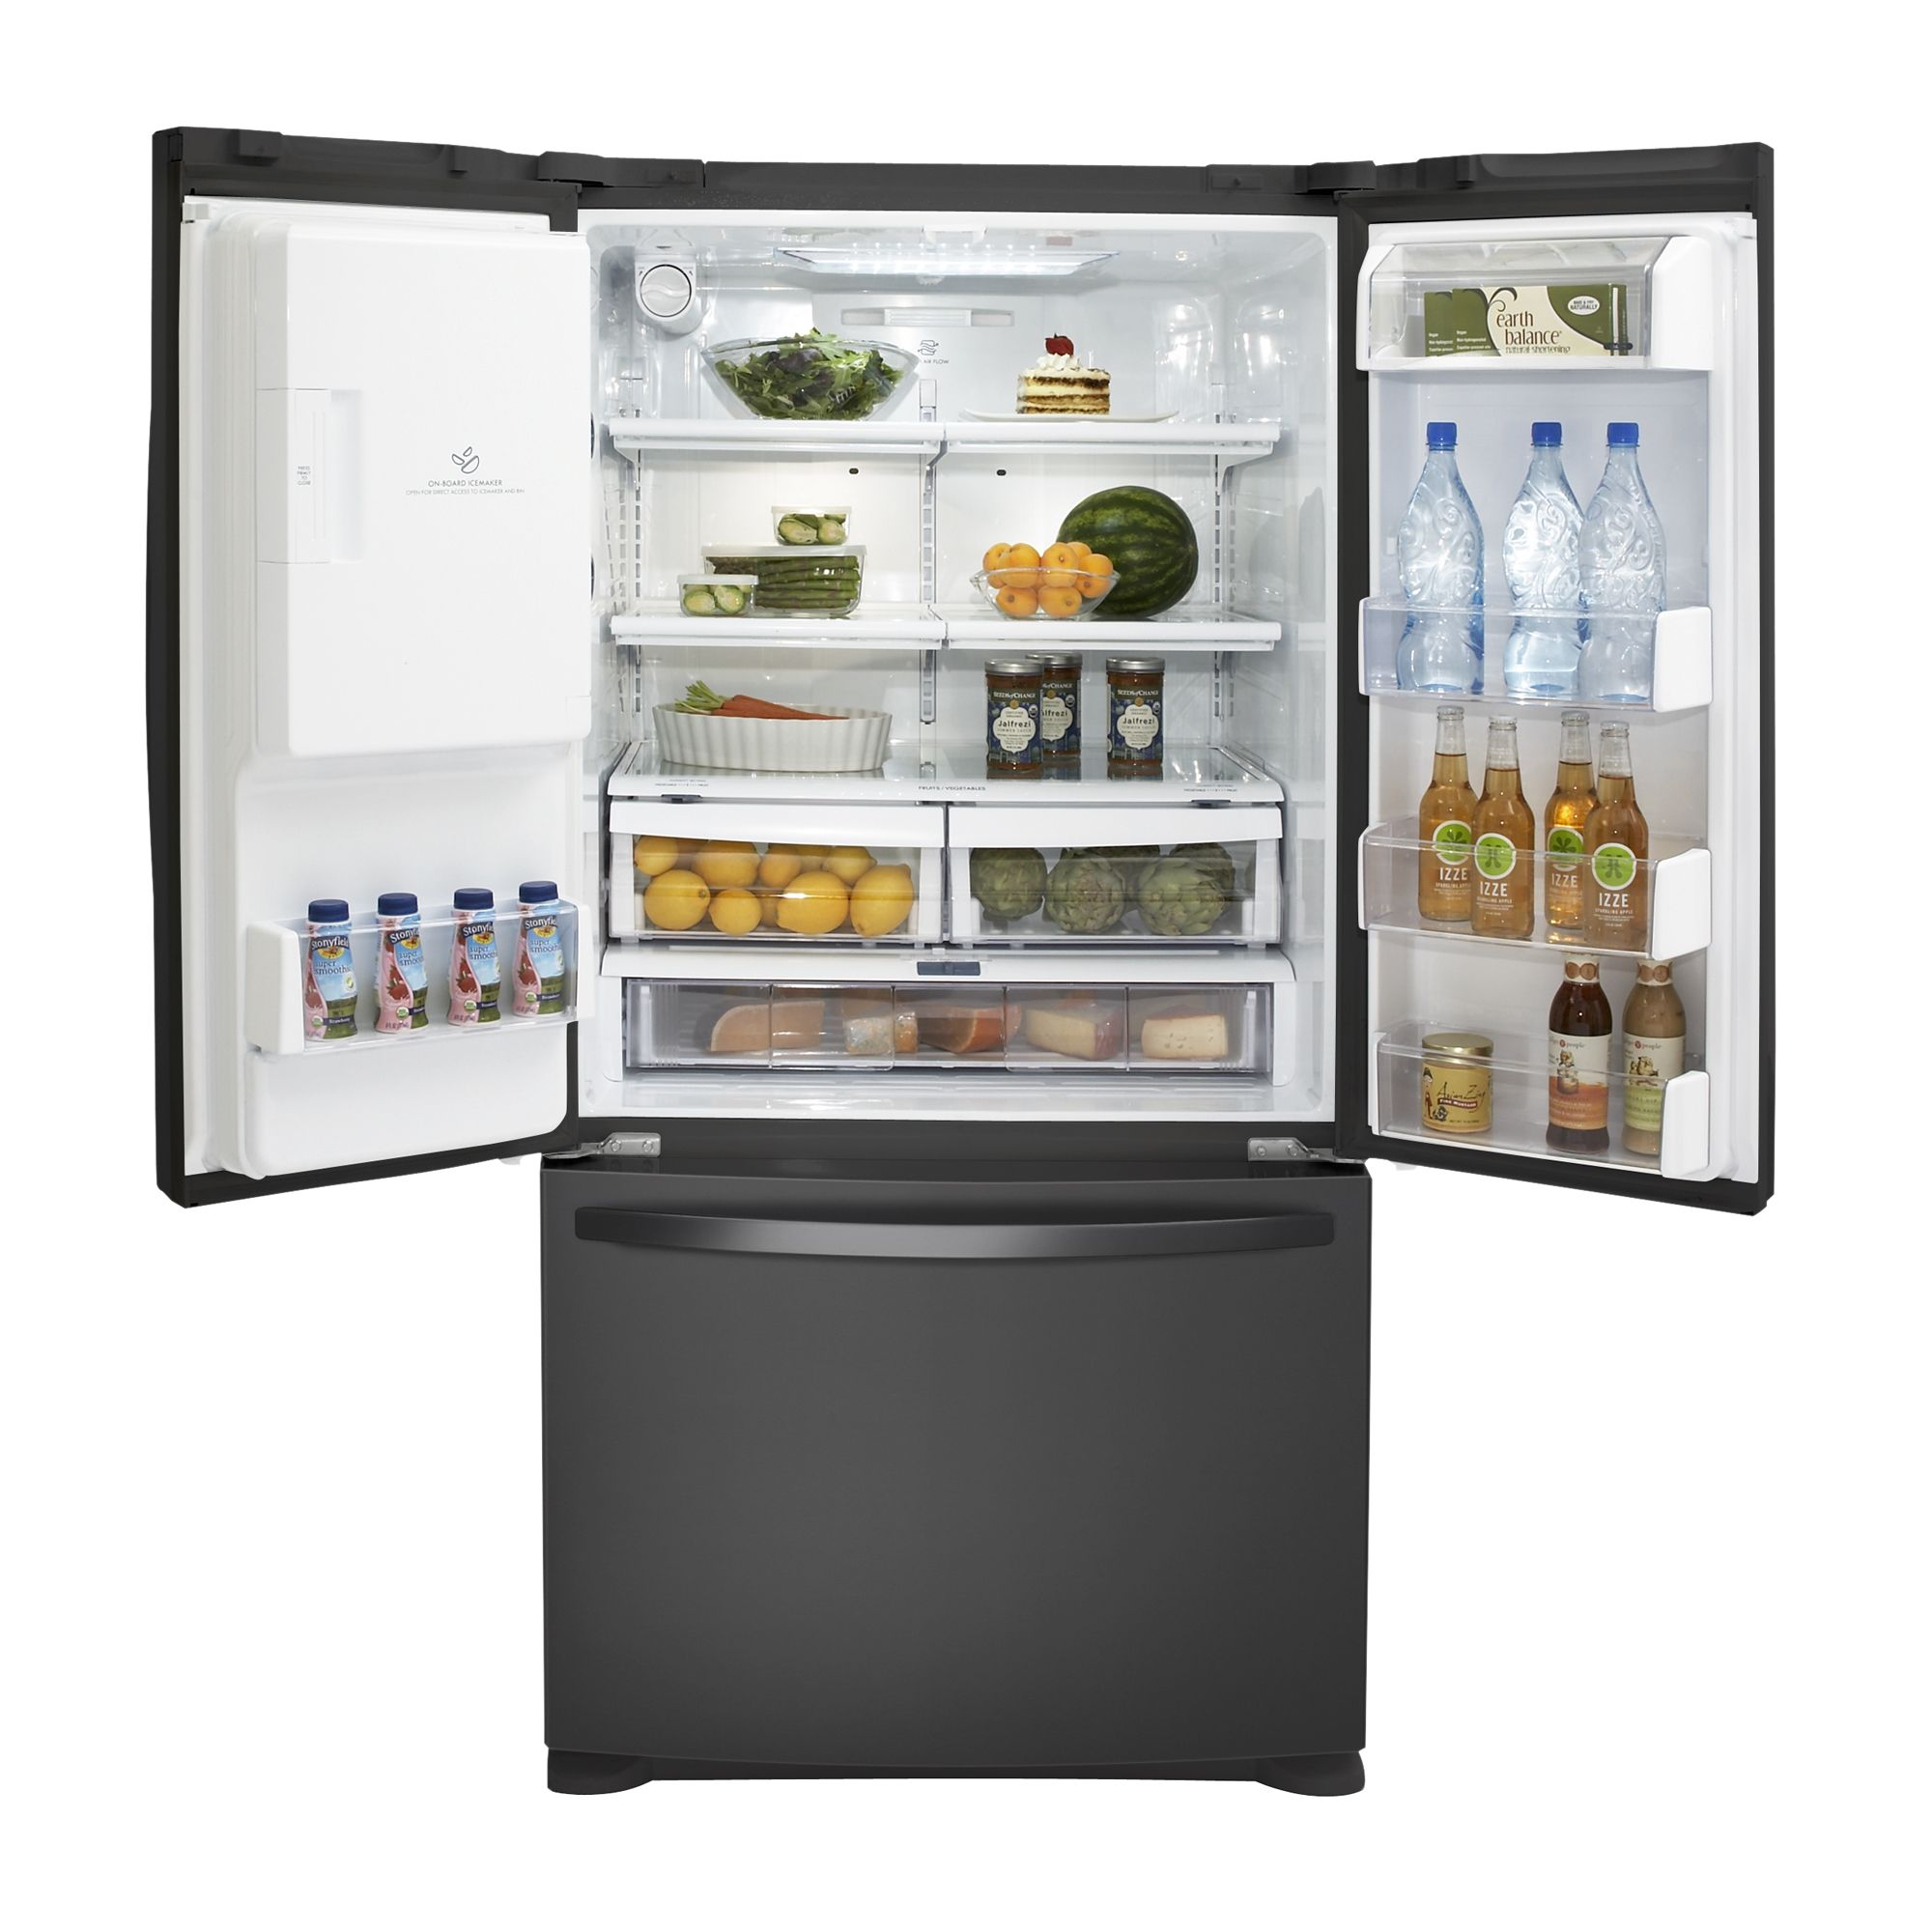 Kenmore 24.7 cu. ft. French-Door Bottom-Freezer Refrigerator